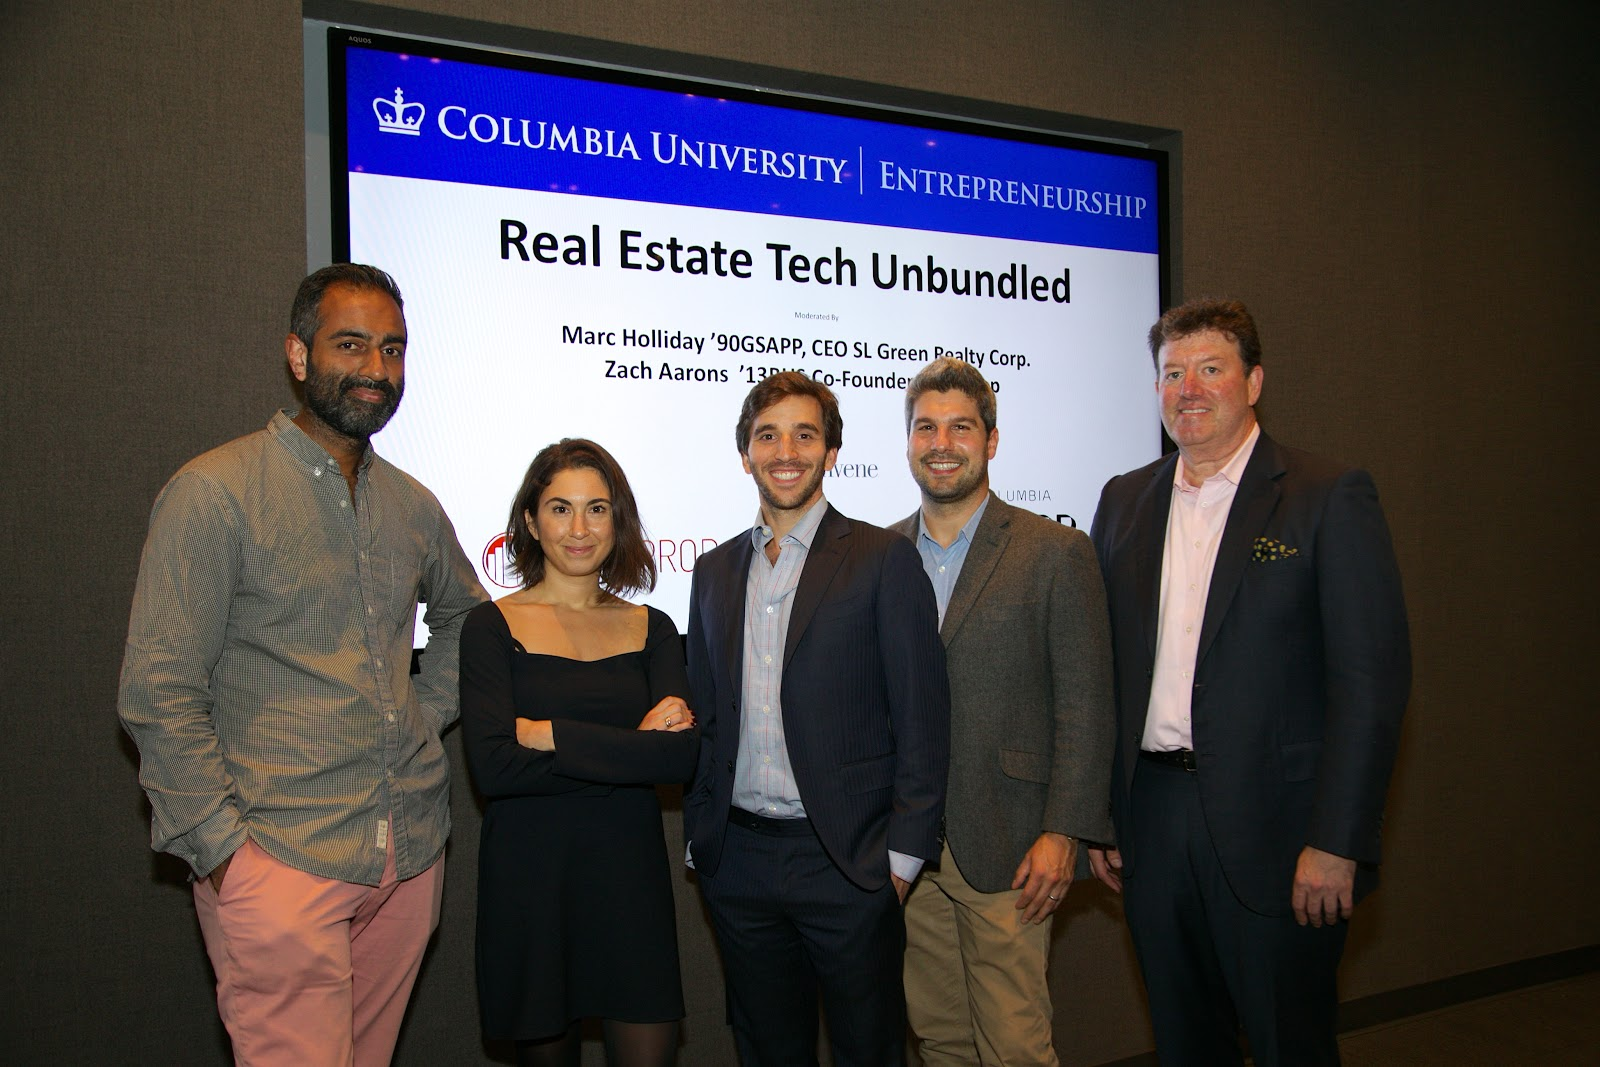 (From left)  A  mol Sarva Ph.D., Founder & CEO of  Knotel | Susannah Vila, Founder of  Flip | Jonathan Wasserstrum, Co-founder and CEO of TheSquareFoot | Zachary Aarons, Co-Founder, MetaProp NYC | Stu Ellman, Columbia Business School professor and co-founder of RRE Ventures